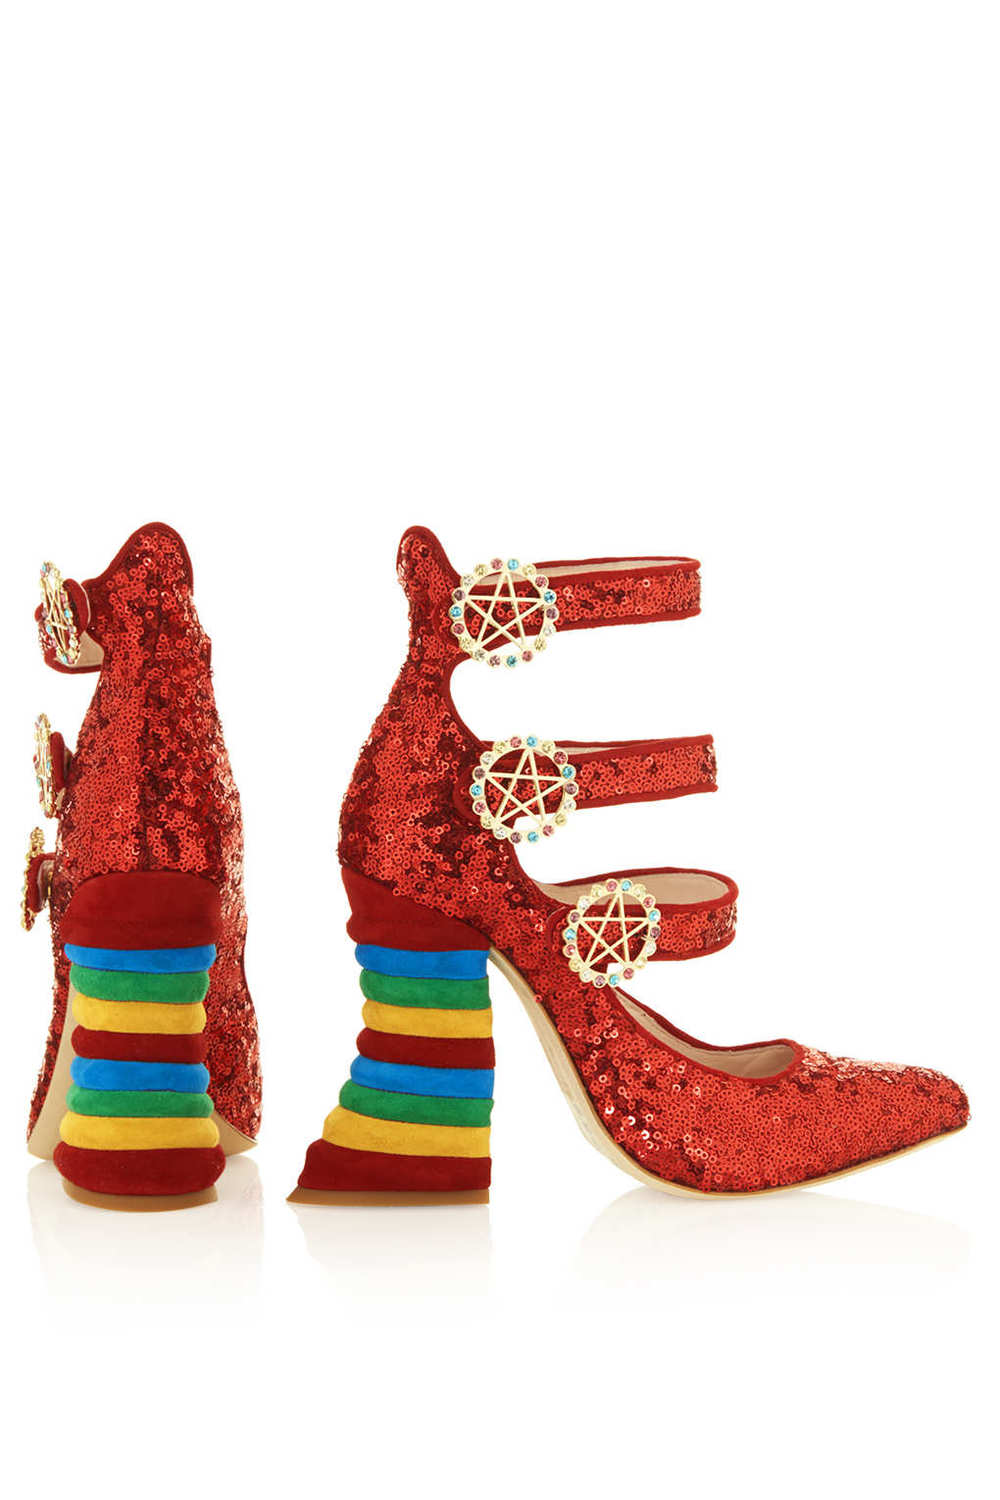 RED SEQUIN RAINBOW HEELS BY MEADHAM KIRCHHOFF 4.jpg